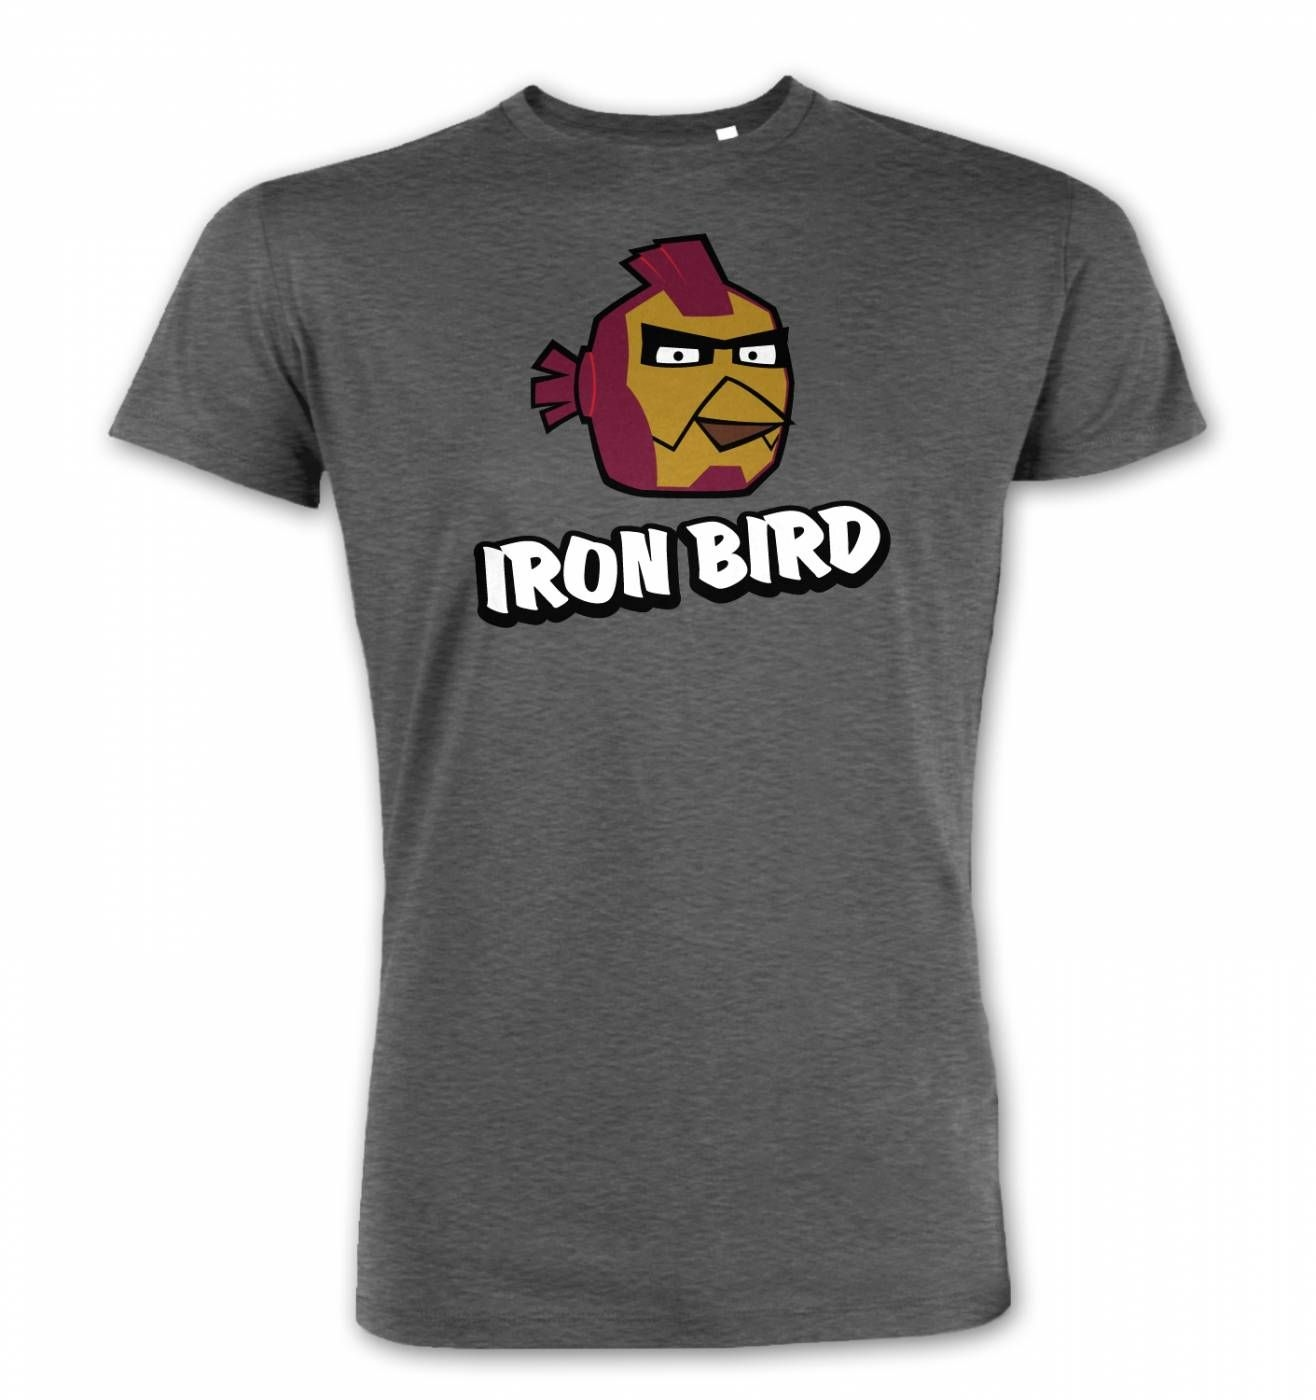 Iron Bird men's Premium t-shirt